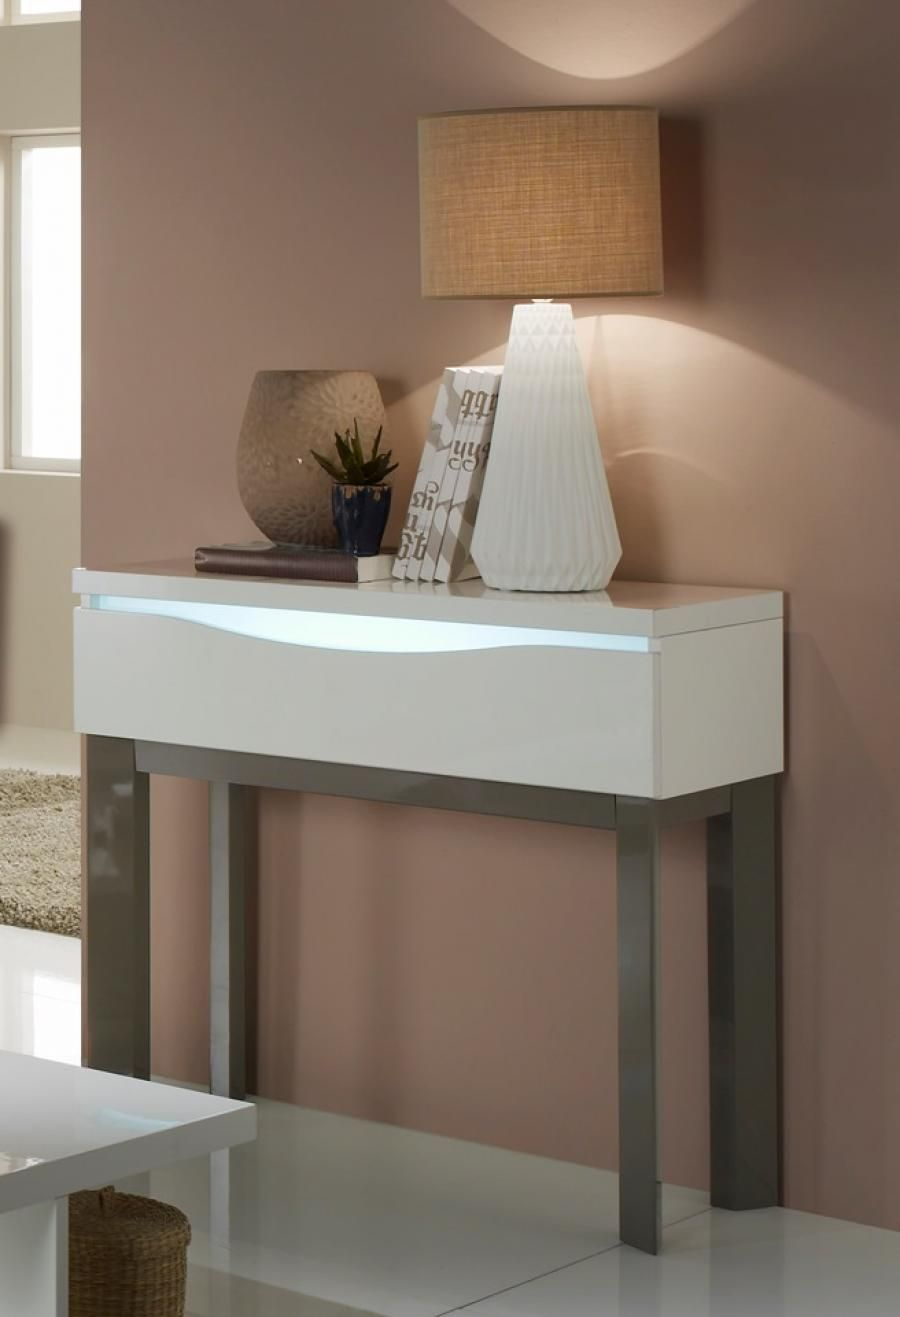 alina contemporary console table in white high gloss and wood finishlegsintegral lights. alina contemporary console table in white high gloss and wood